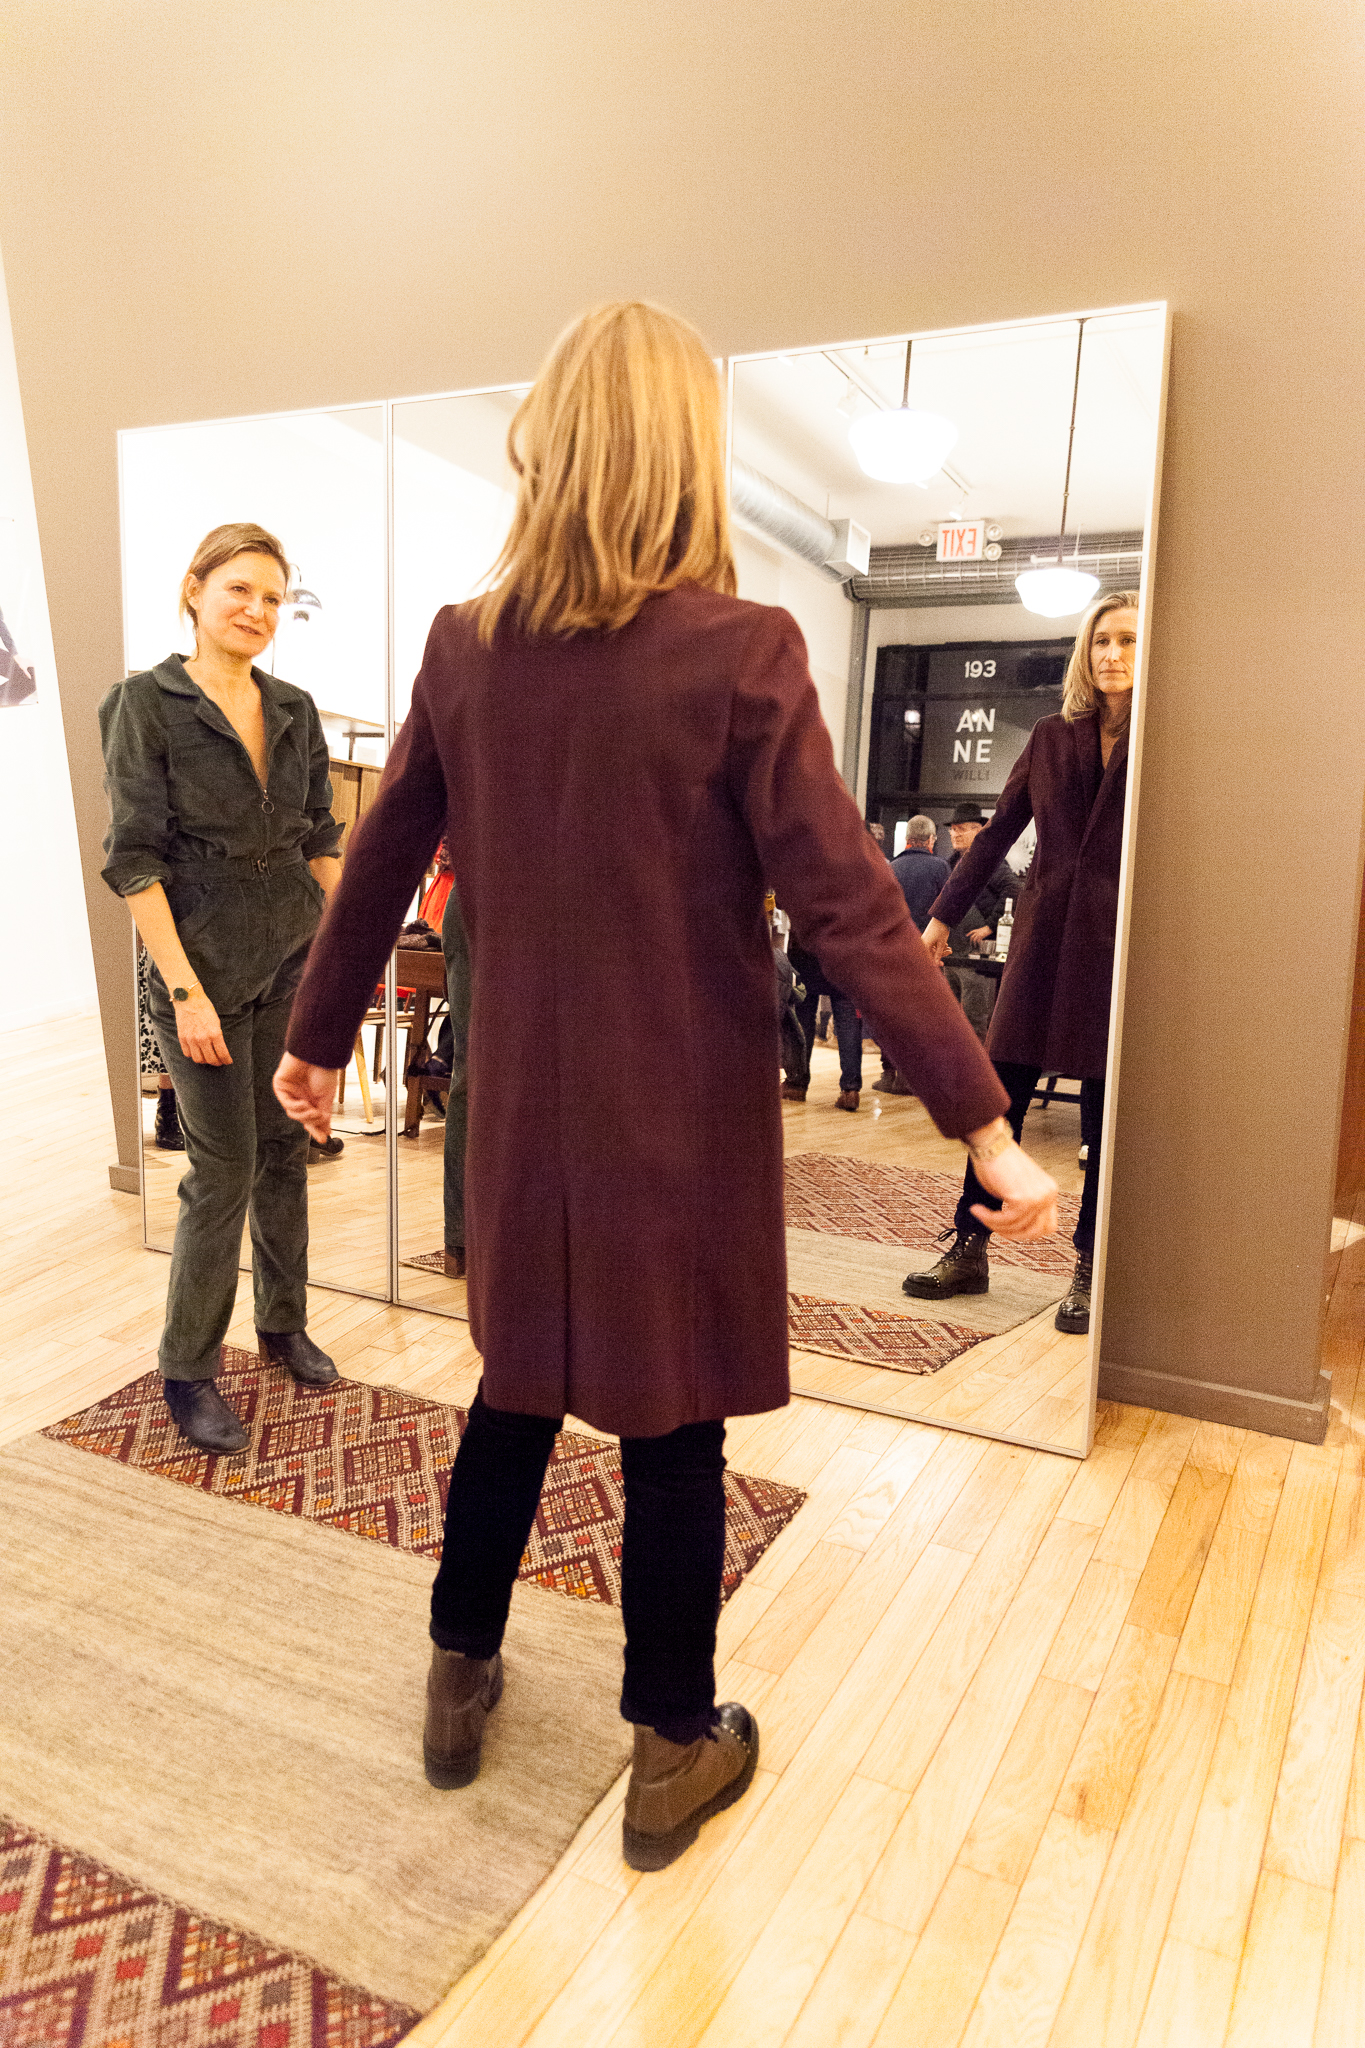 camuglia_anne-willi-holiday-party-nyc-2018_0044_2048.jpg